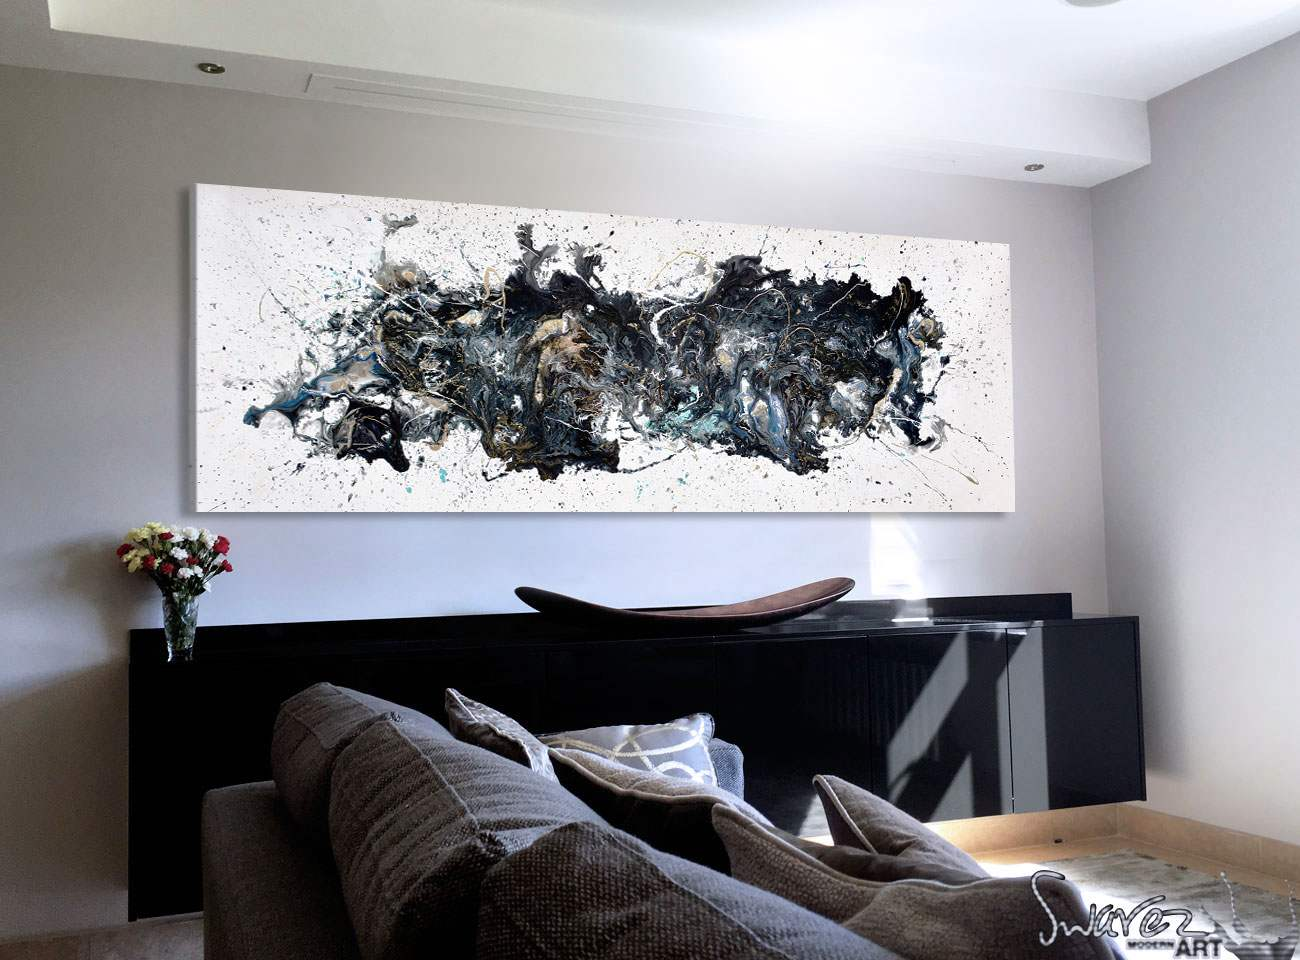 Black and white abstract painting hung on a living room wall